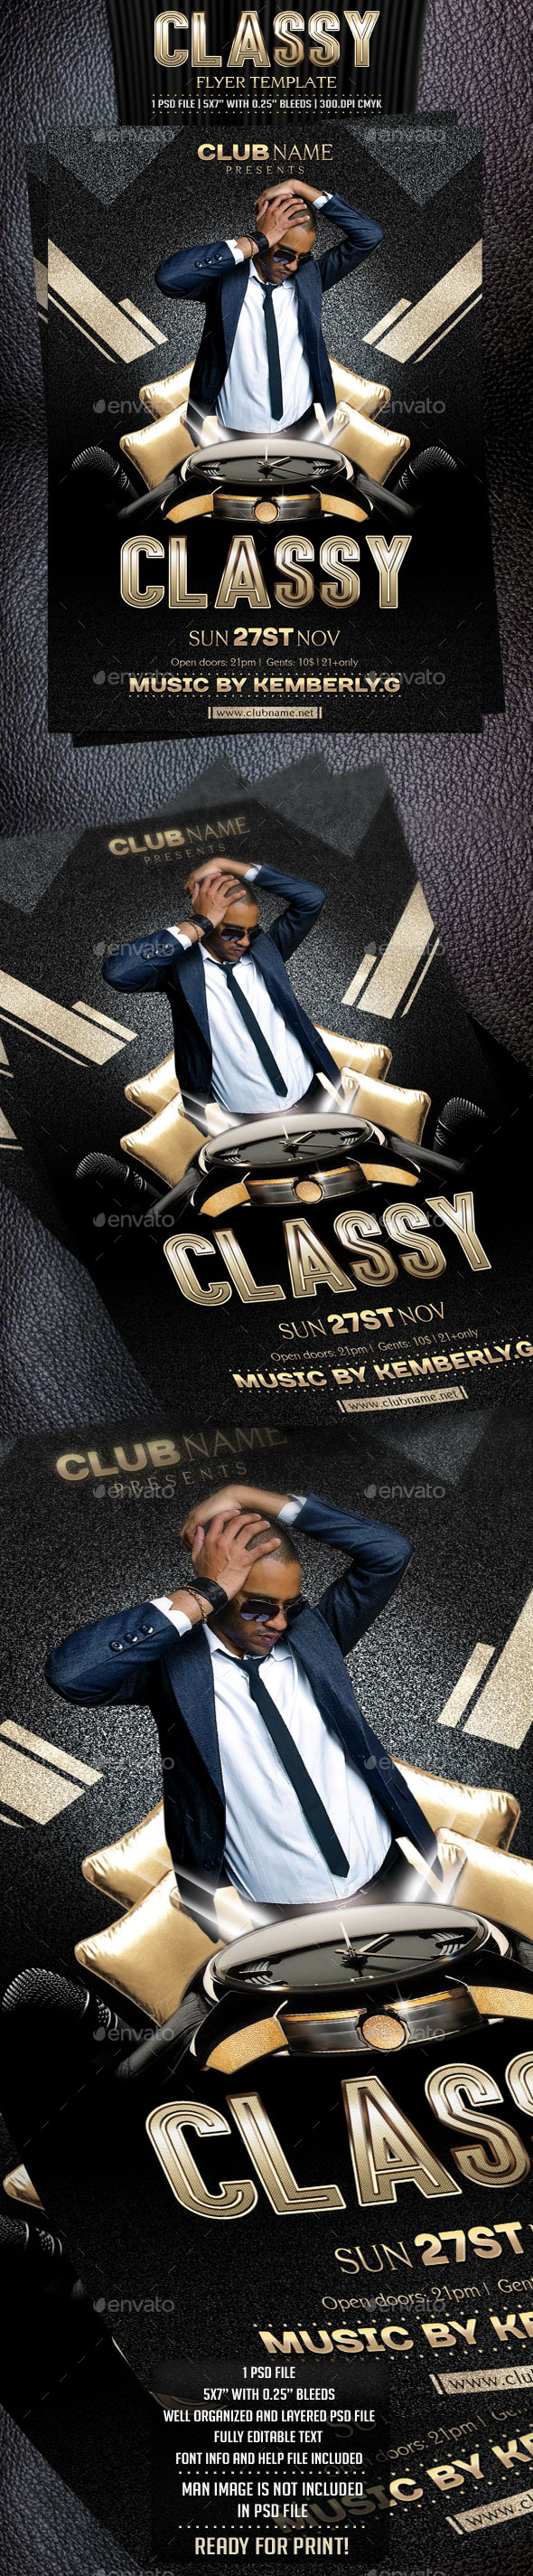 Classy Flyer Template - Clubs & Parties Events